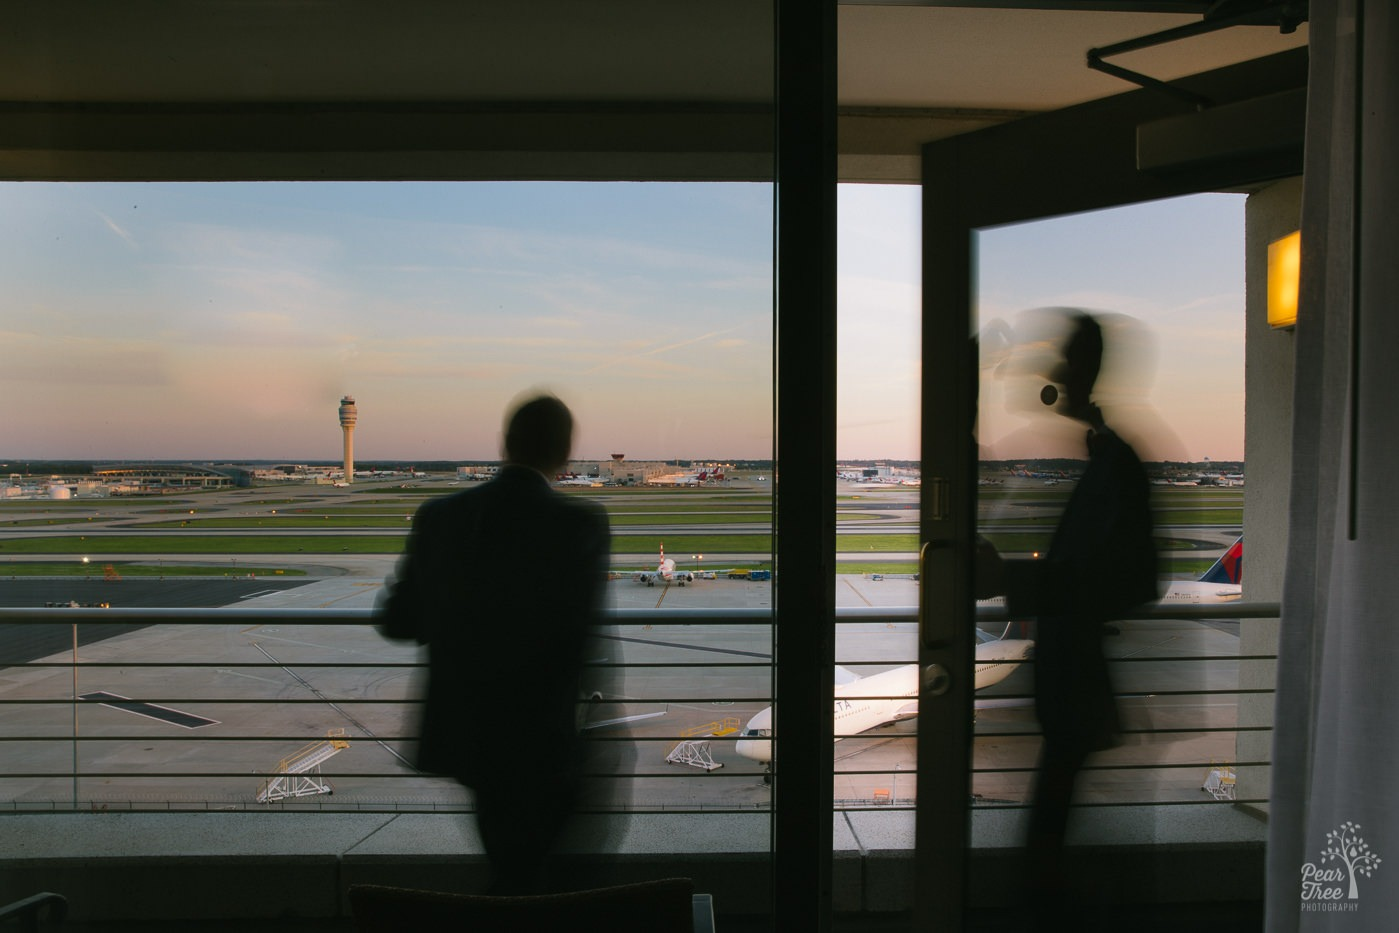 Silhouettes of two grooms on Renaissance Concourse Atlanta Airport Hotel penthouse balcony overlooking Hartsfield runways with Delta jets parked on the tarmac.